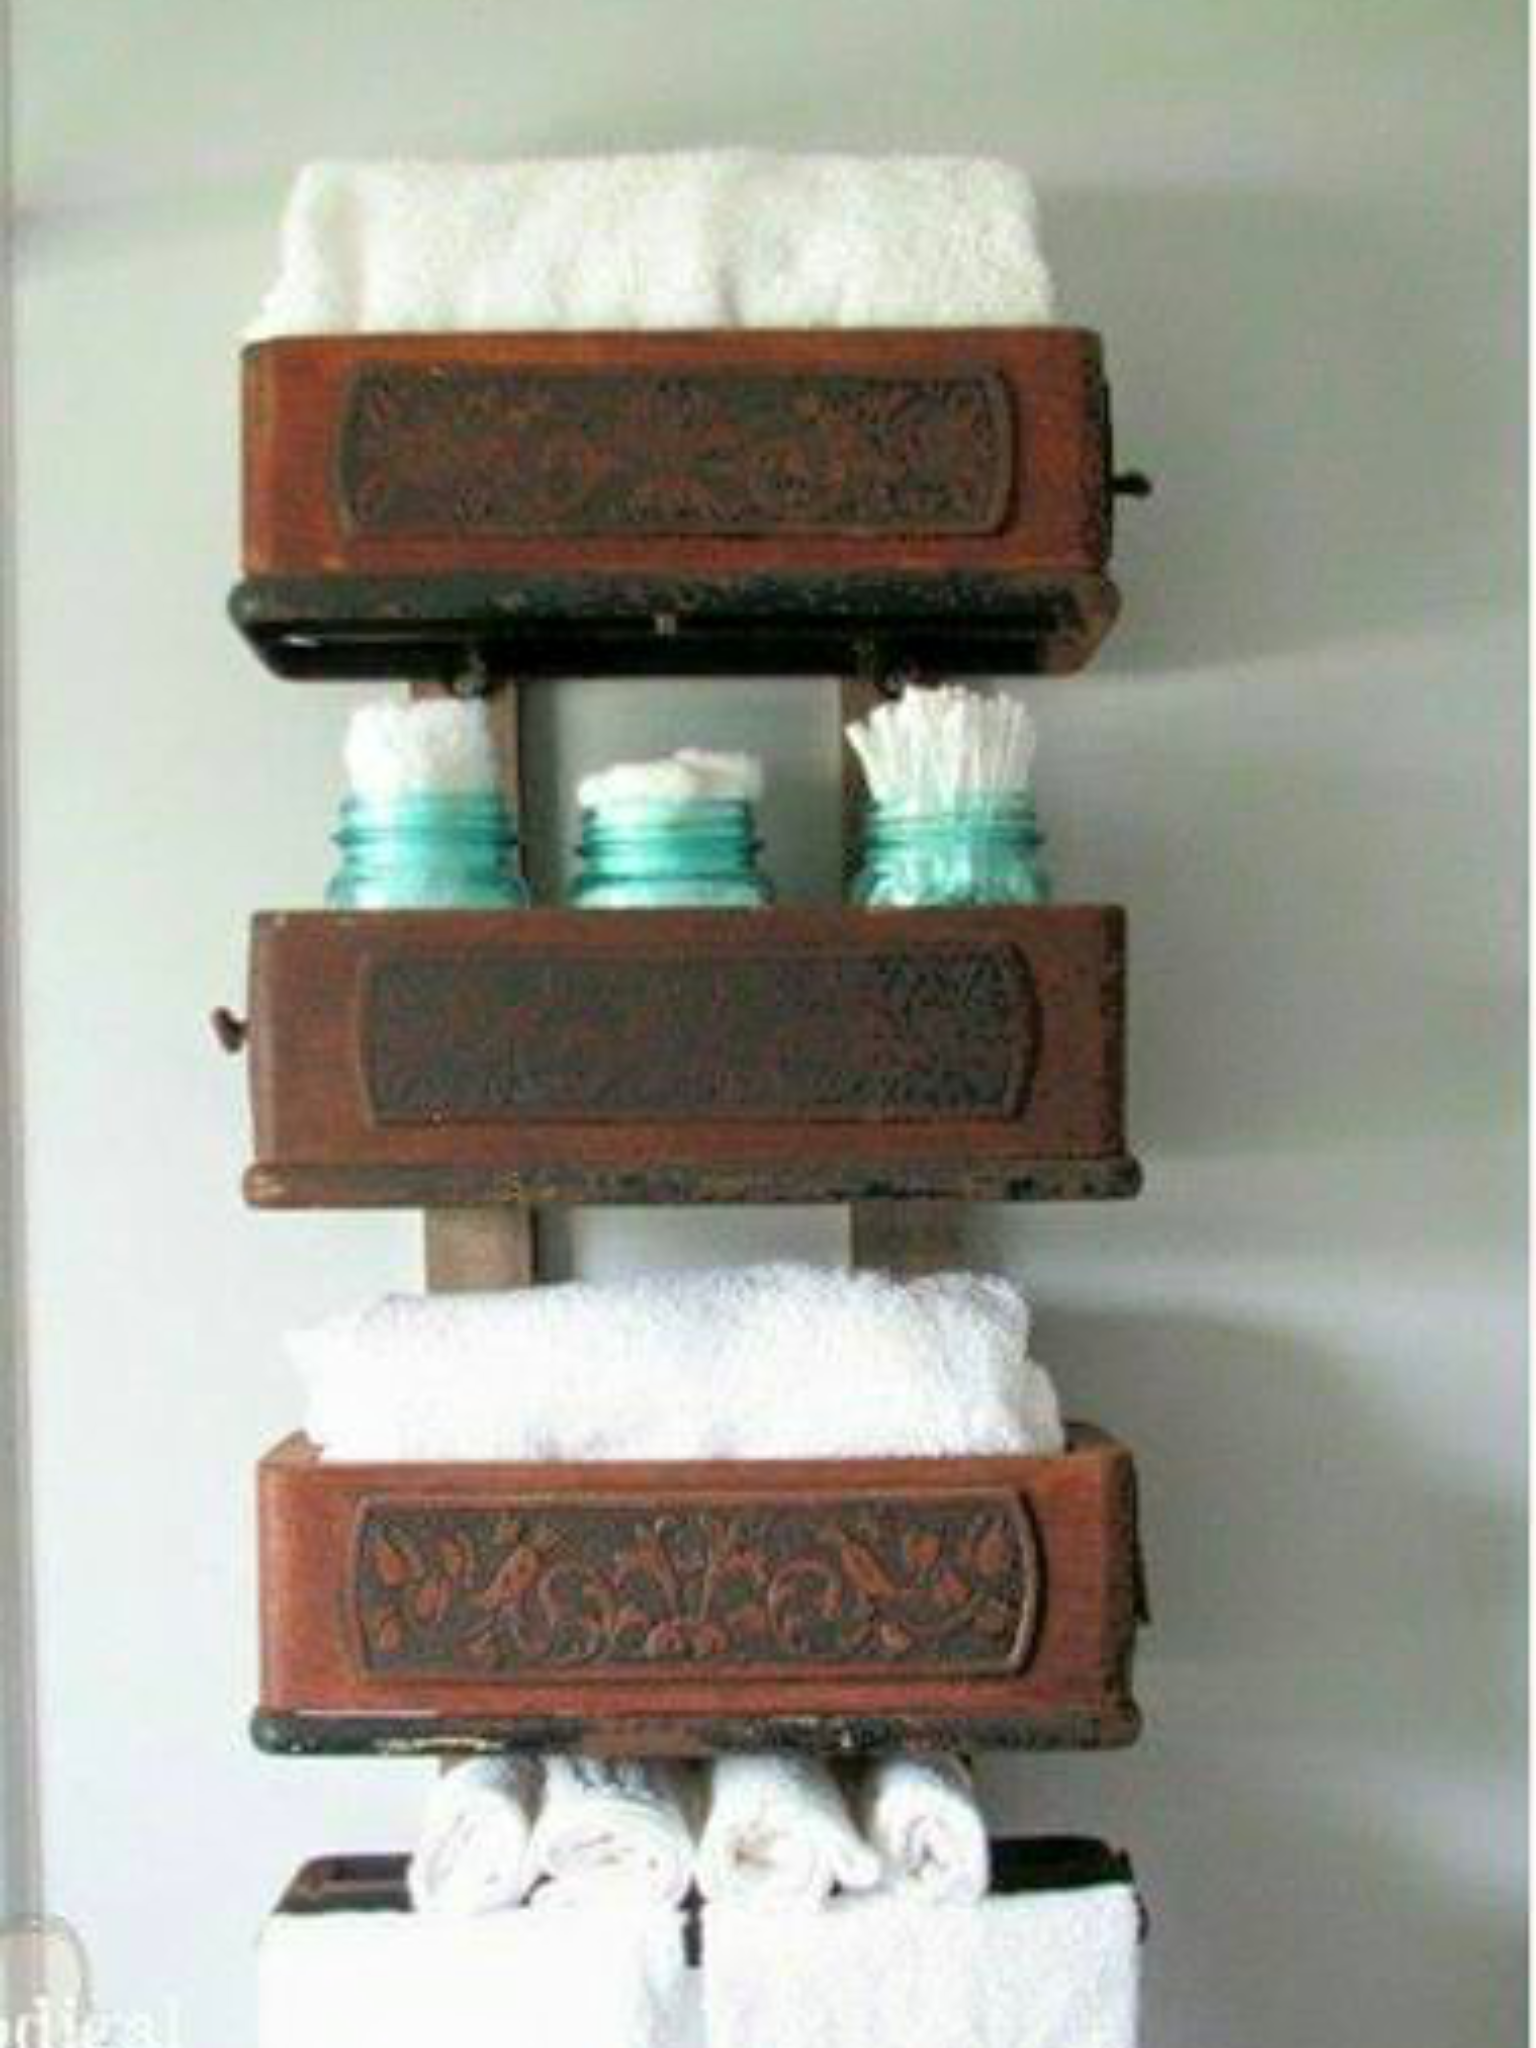 Sewing machine drawer shelves